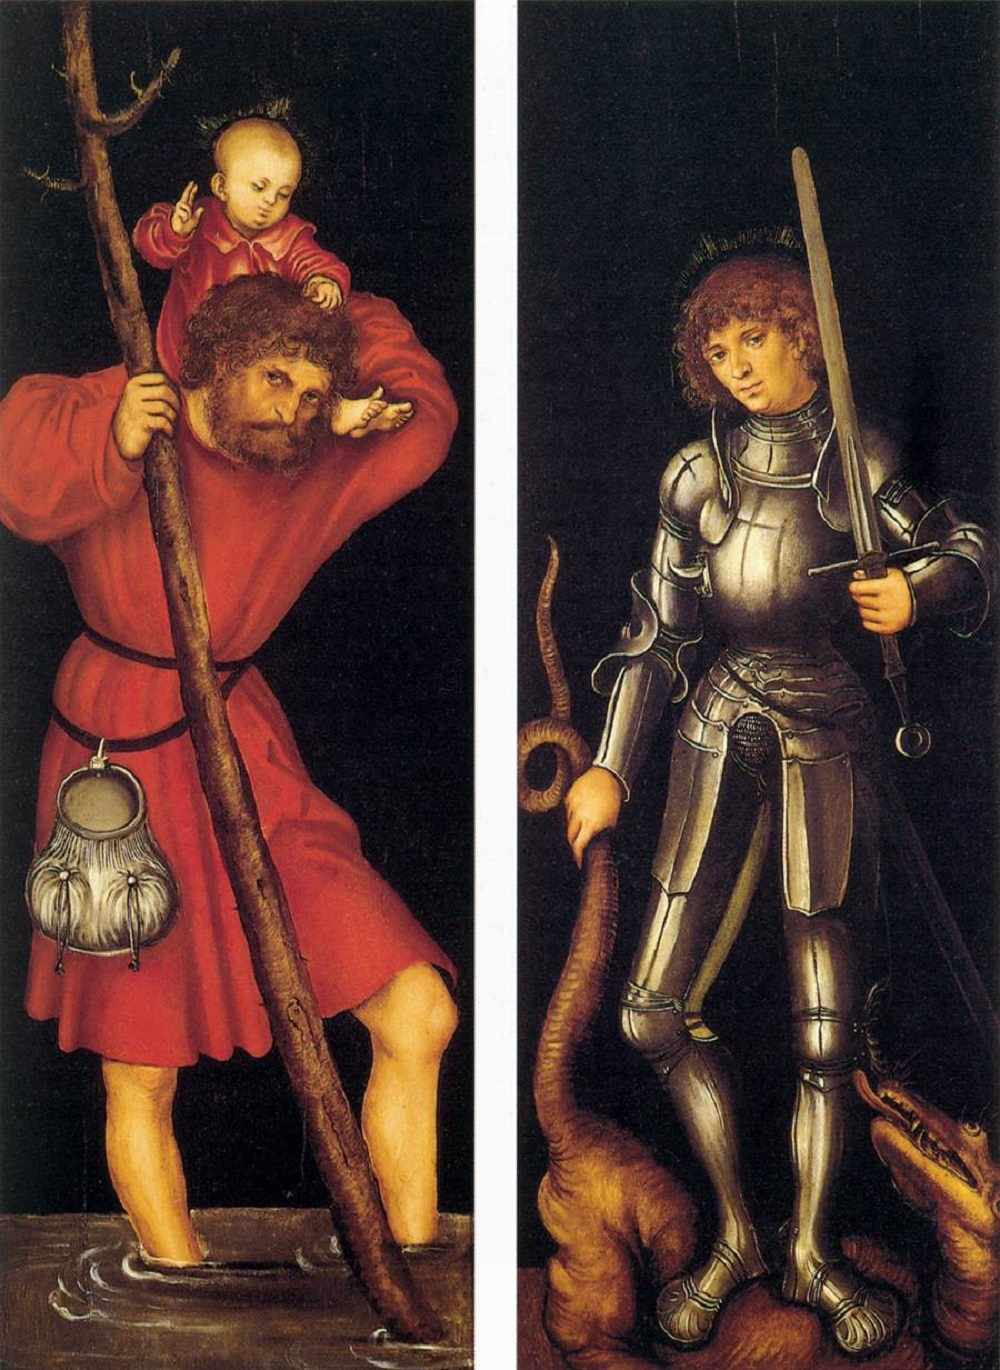 1514 CRANACH, Lucas the Elder Sts Christopher and George (outer side) c. 1514 Oil on panel, 85 x 31 cm (each wing) Fundación Colección Thyssen-Bornemisza, Pedralbes